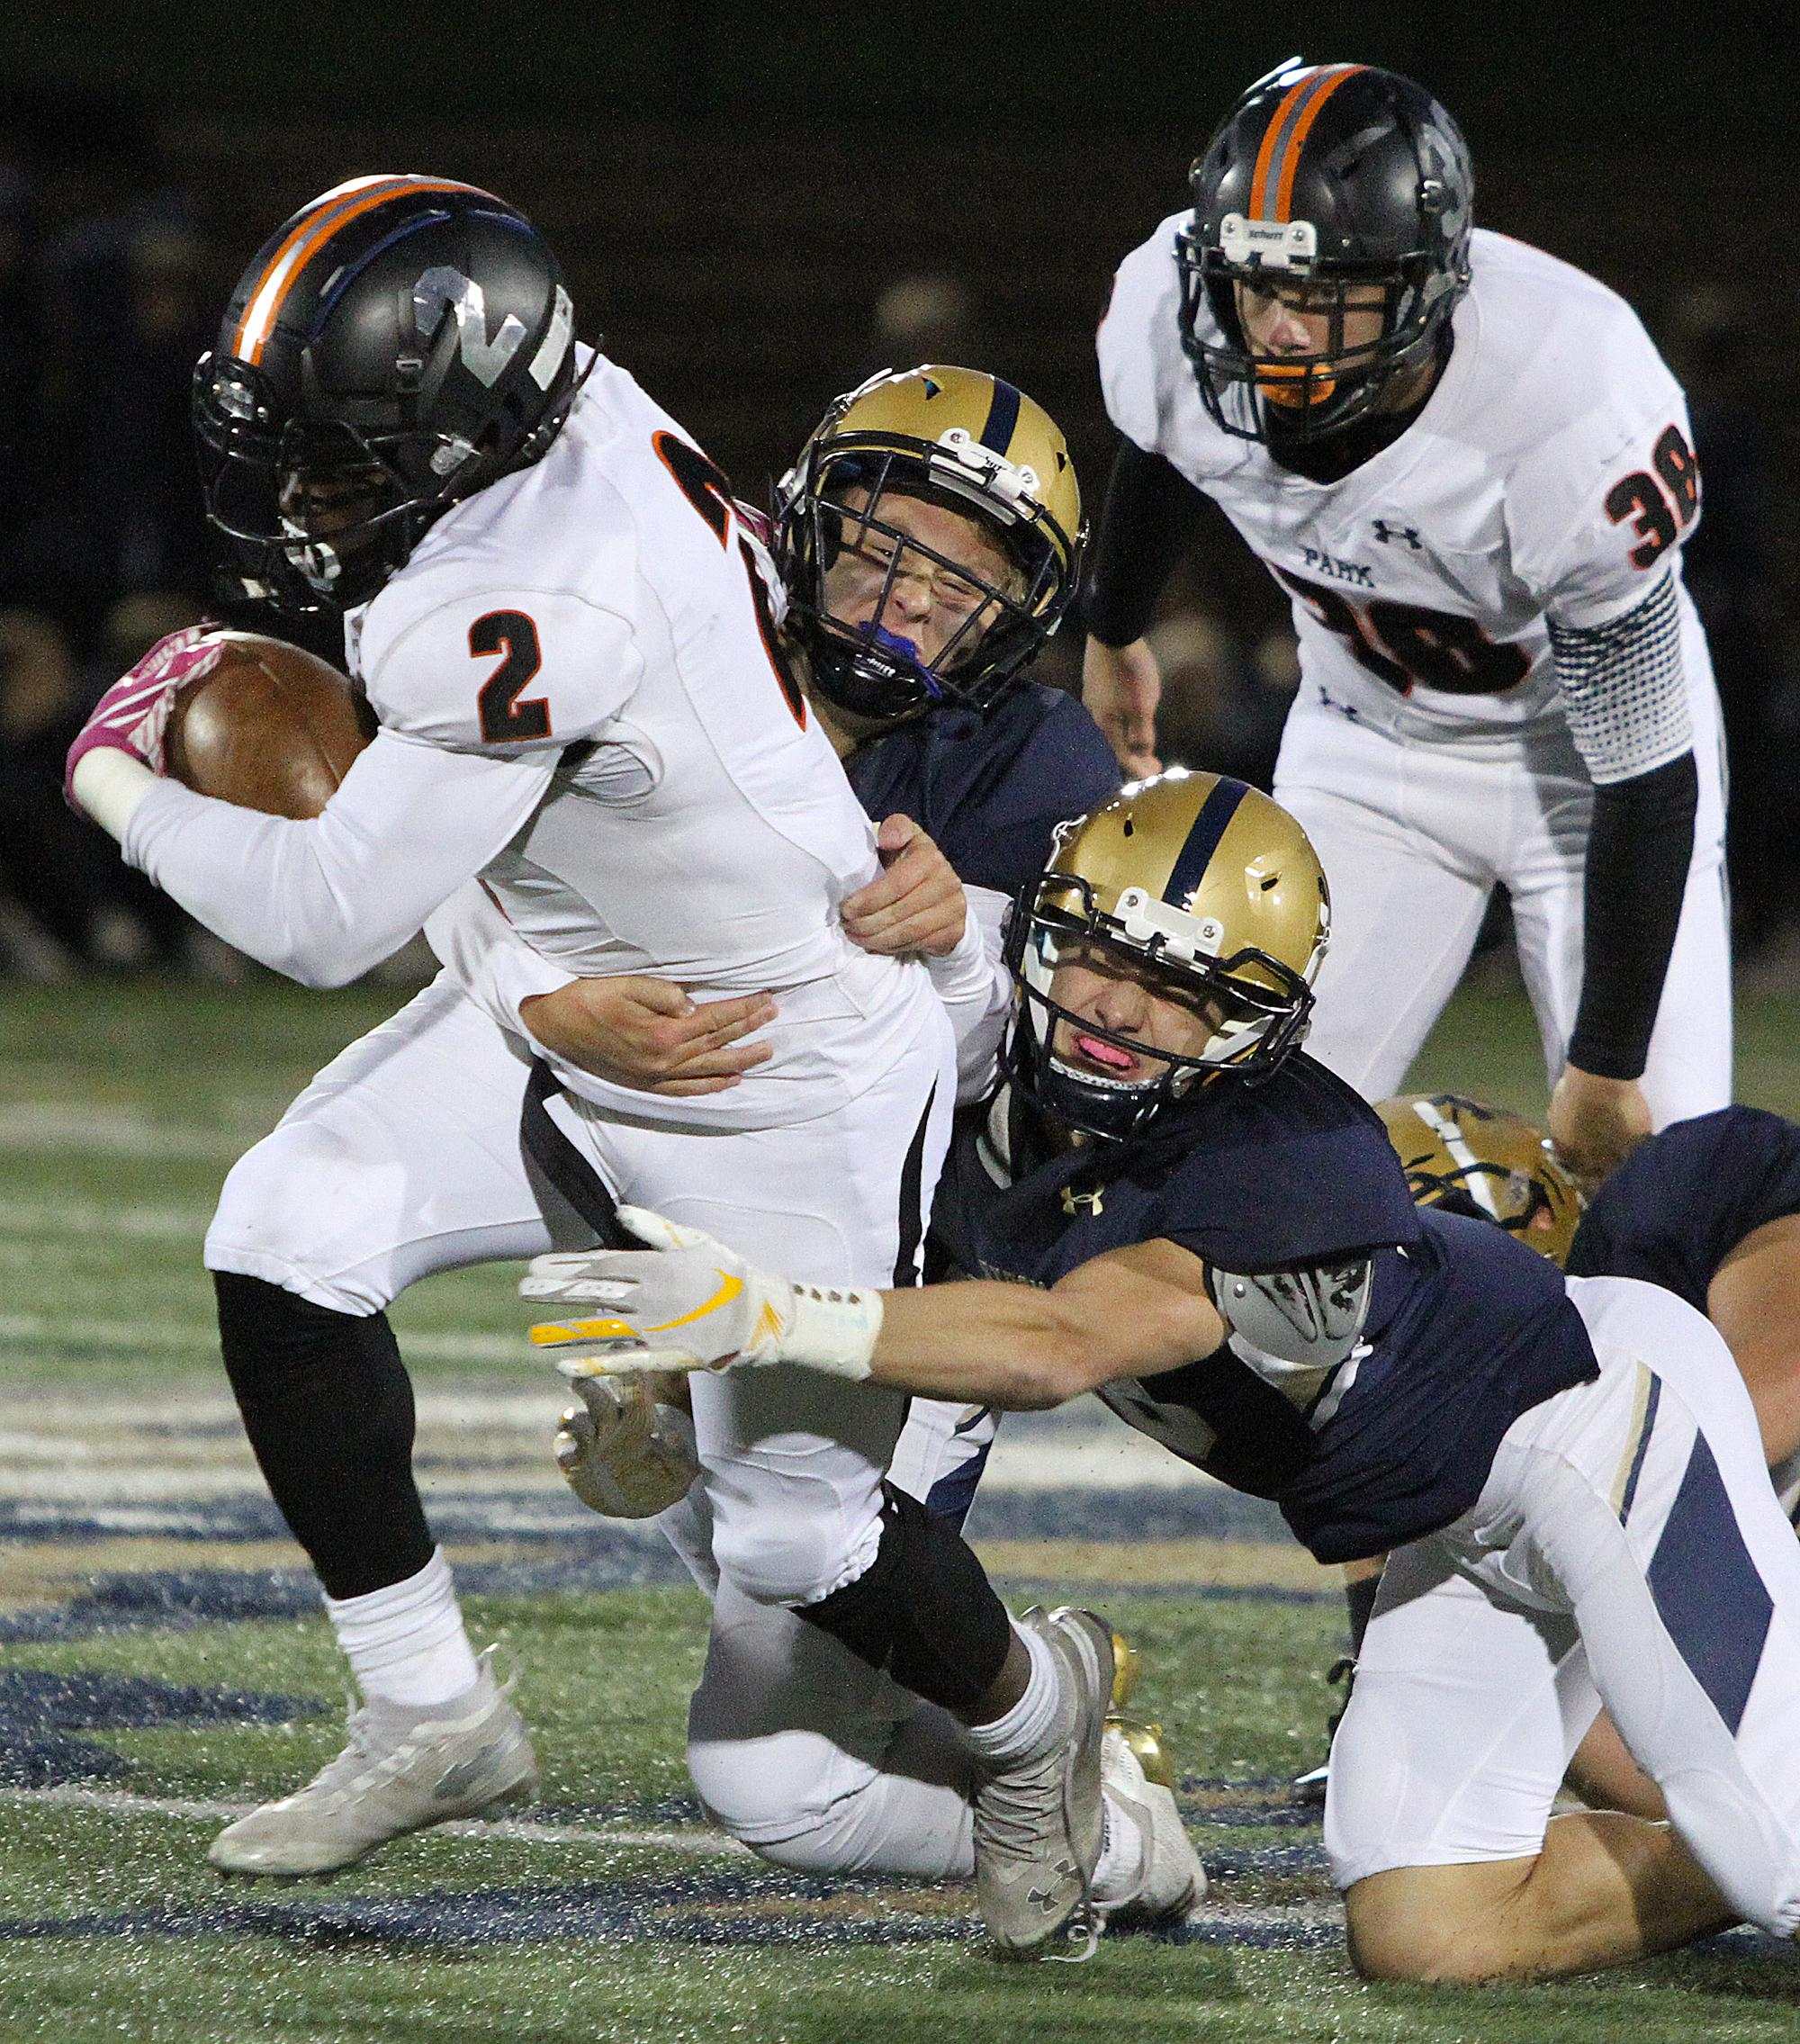 St. Louis Park senior Tobyous Davenport fights off Chanhassen tacklers near midfield in the first half Friday. Photo by Drew Herron, SportsEngine